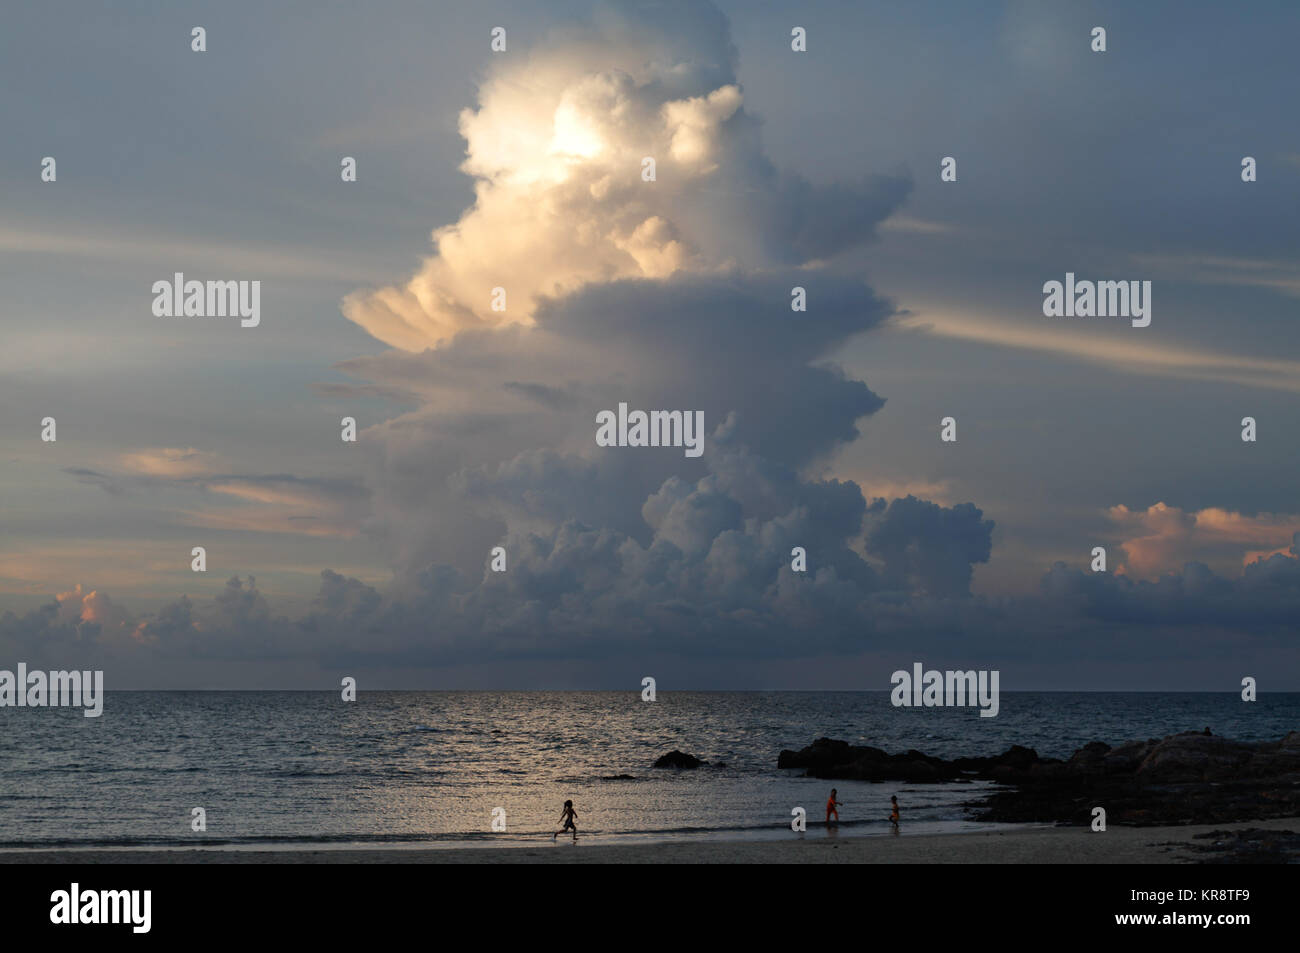 Towering cumulonimbus cloud at sunset in Malaysia - Stock Image